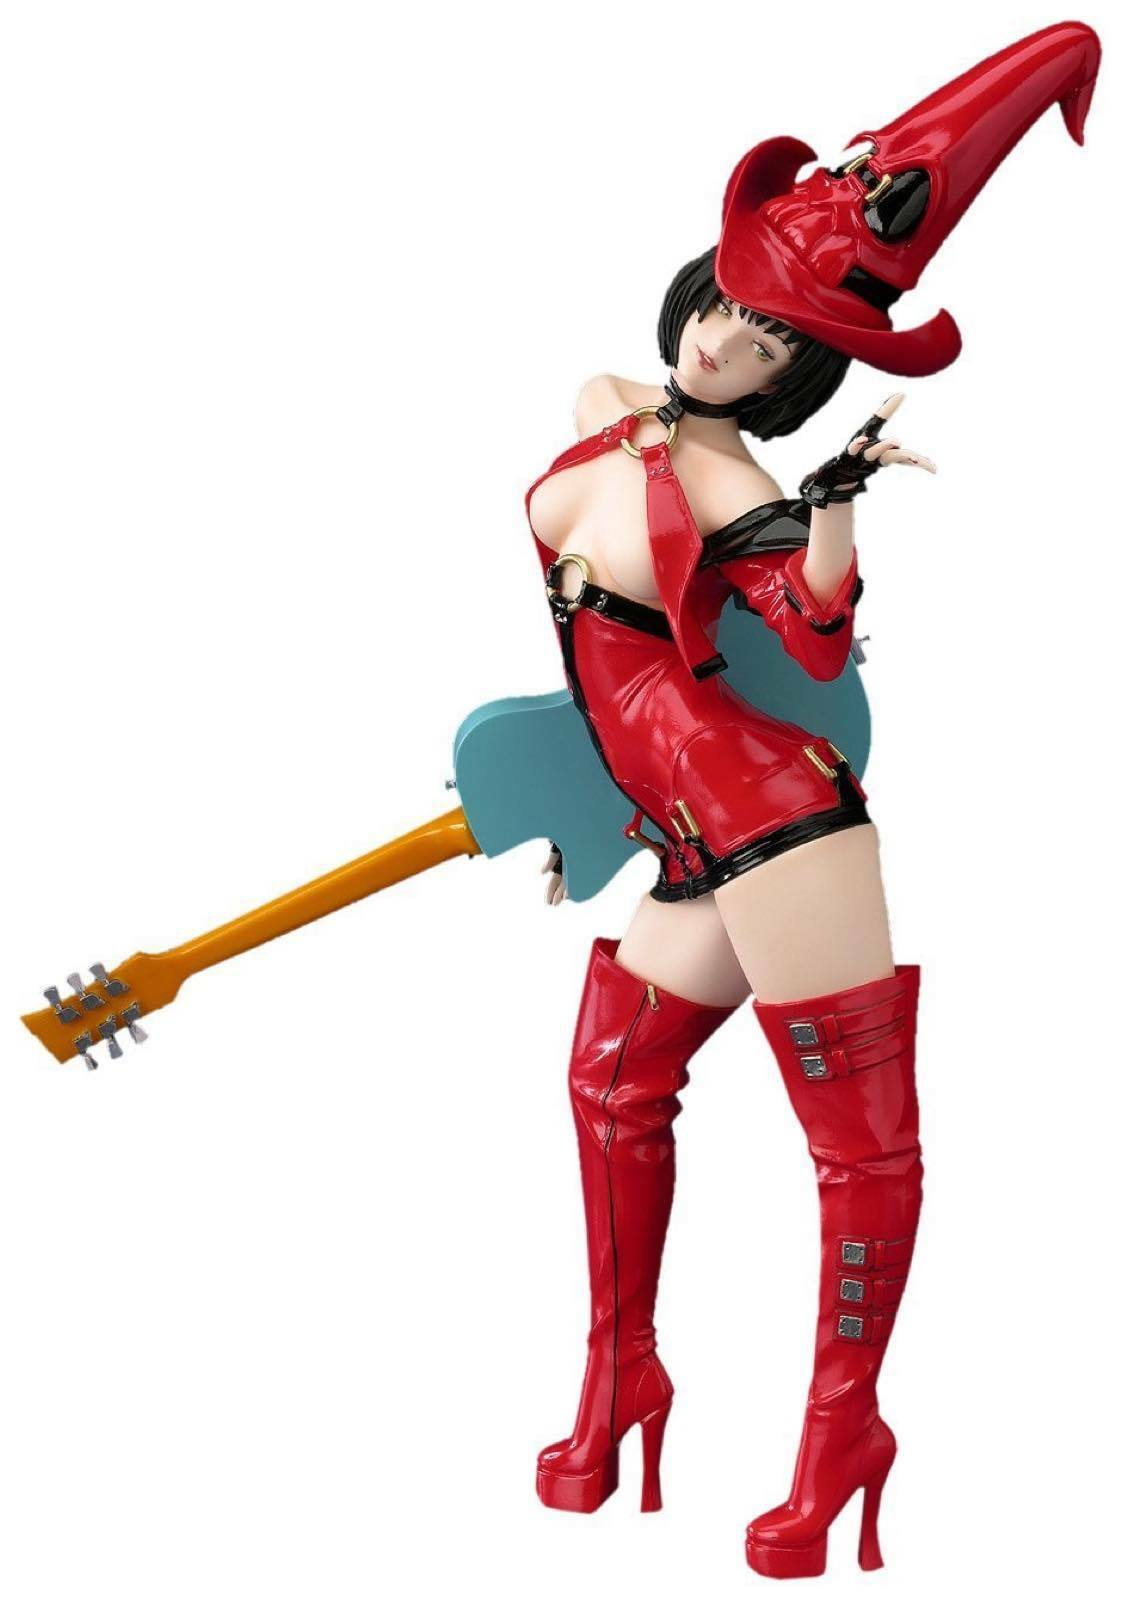 Guilty Gear XX I-no 1 7 scale PVC Painted Figure From Japan Maxfactory New F S